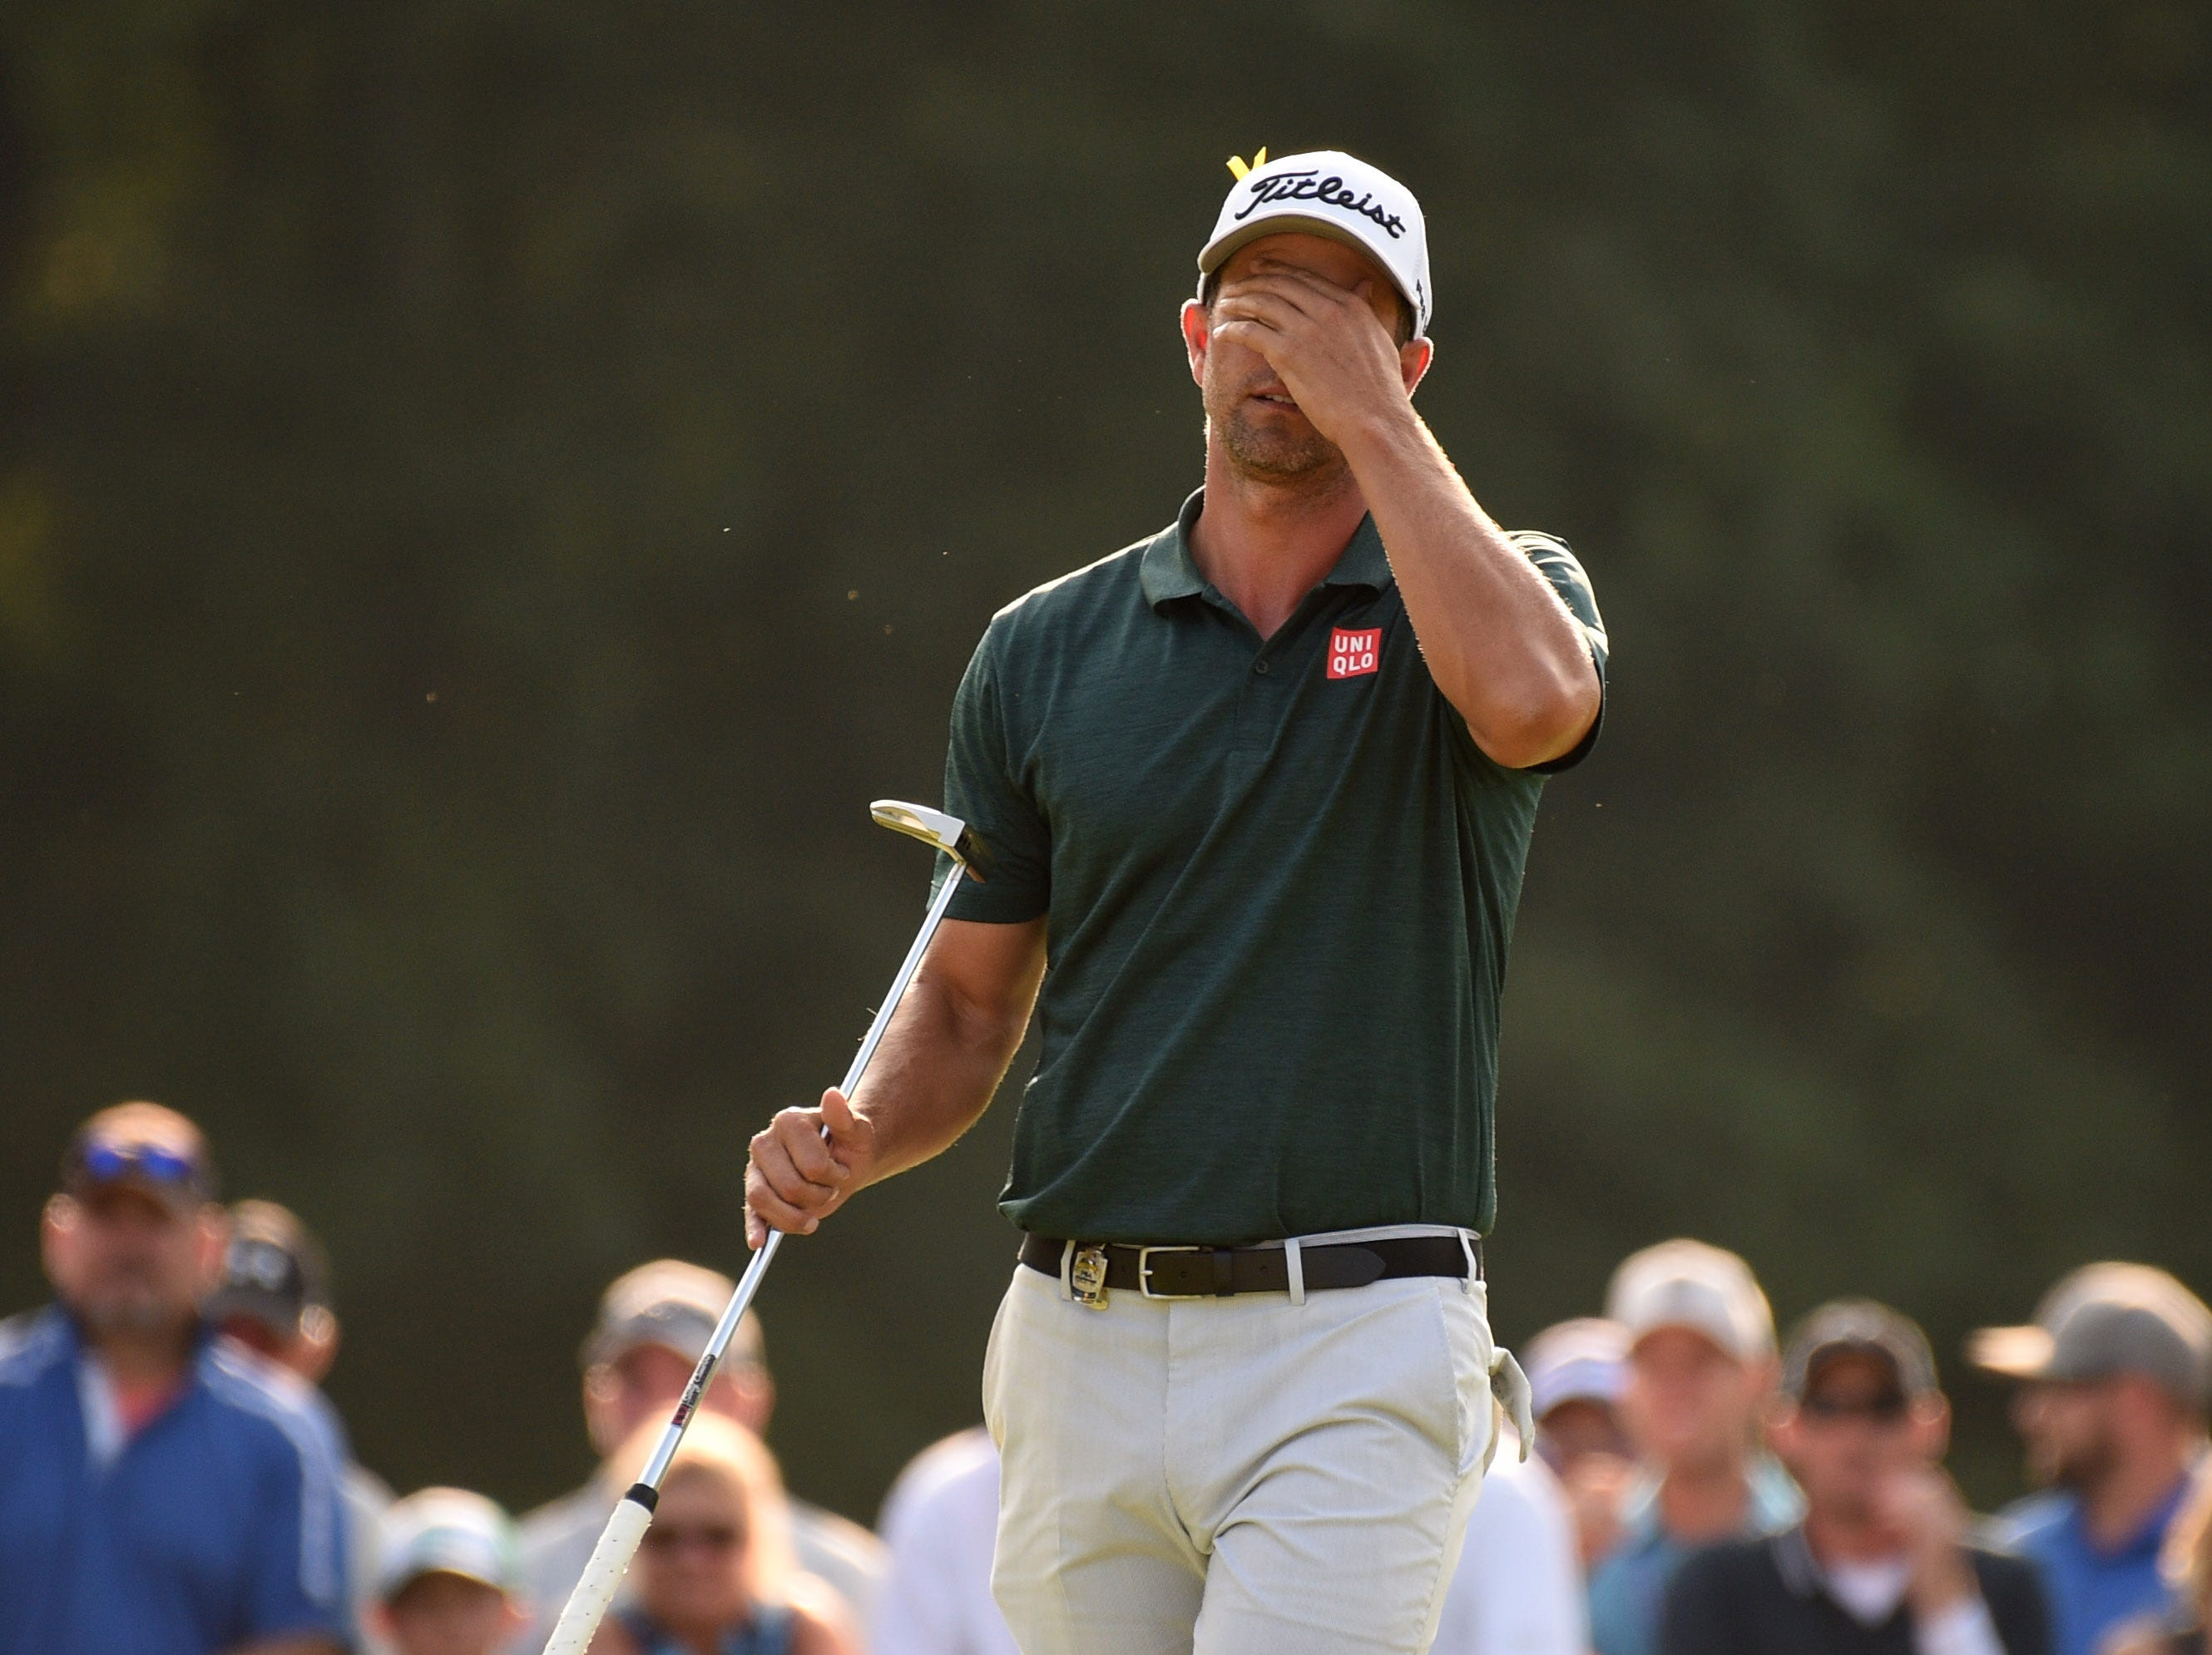 Adam Scott reacts after missing a putt on the 18th green during the third round of the PGA Championship. He's in second, two shots back.